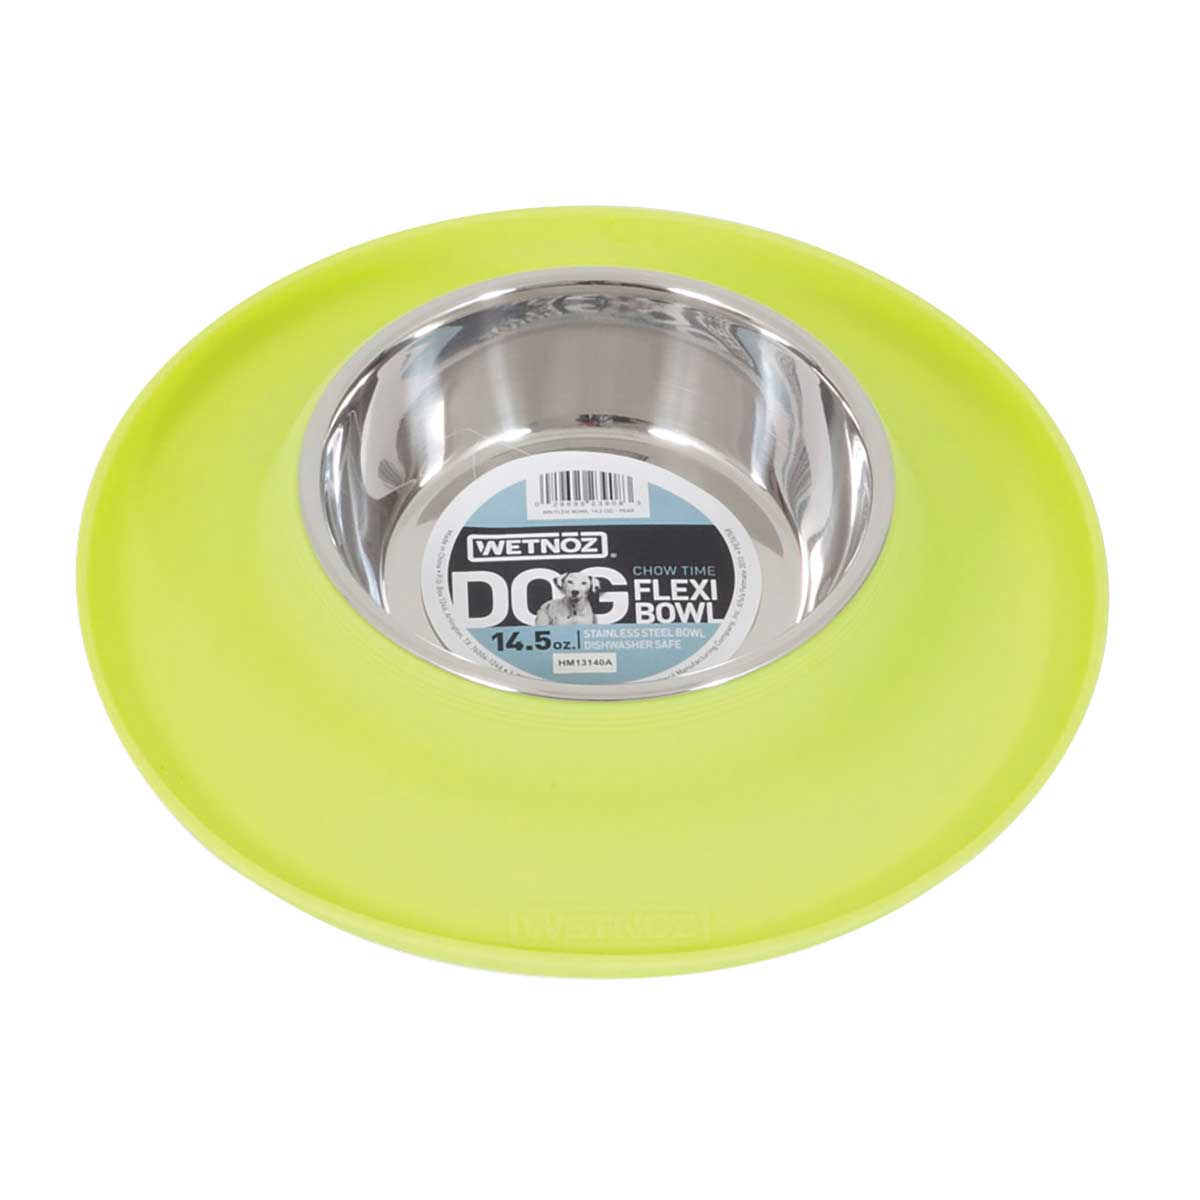 Wetnoz Flexi Bowl 28.5 oz Pear